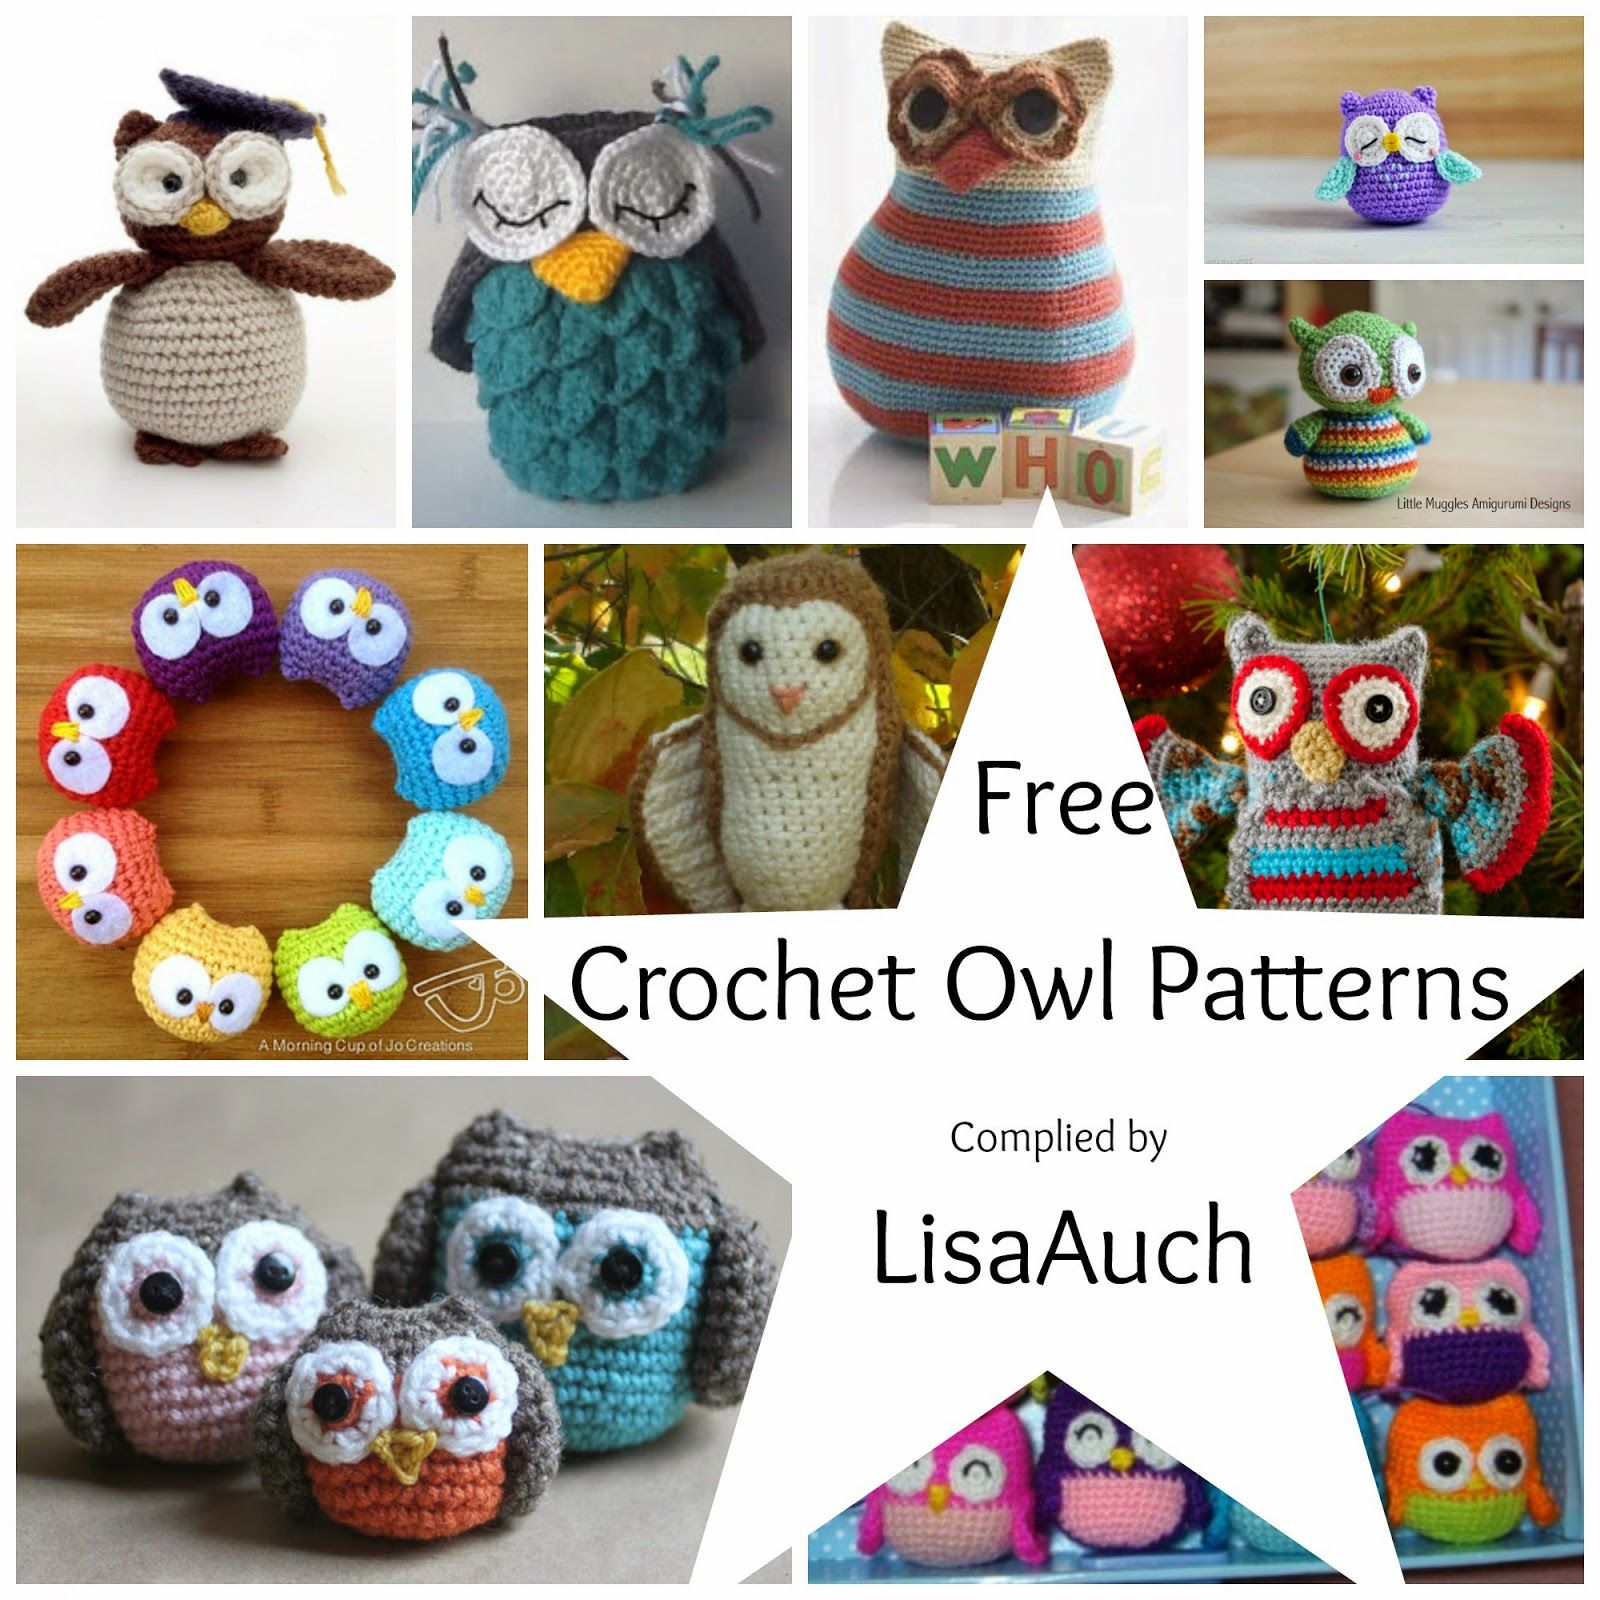 Free crochet owl patterns compiled by lisa auch crochet pattern free crochet owl patterns compiled by lisa auch bankloansurffo Gallery